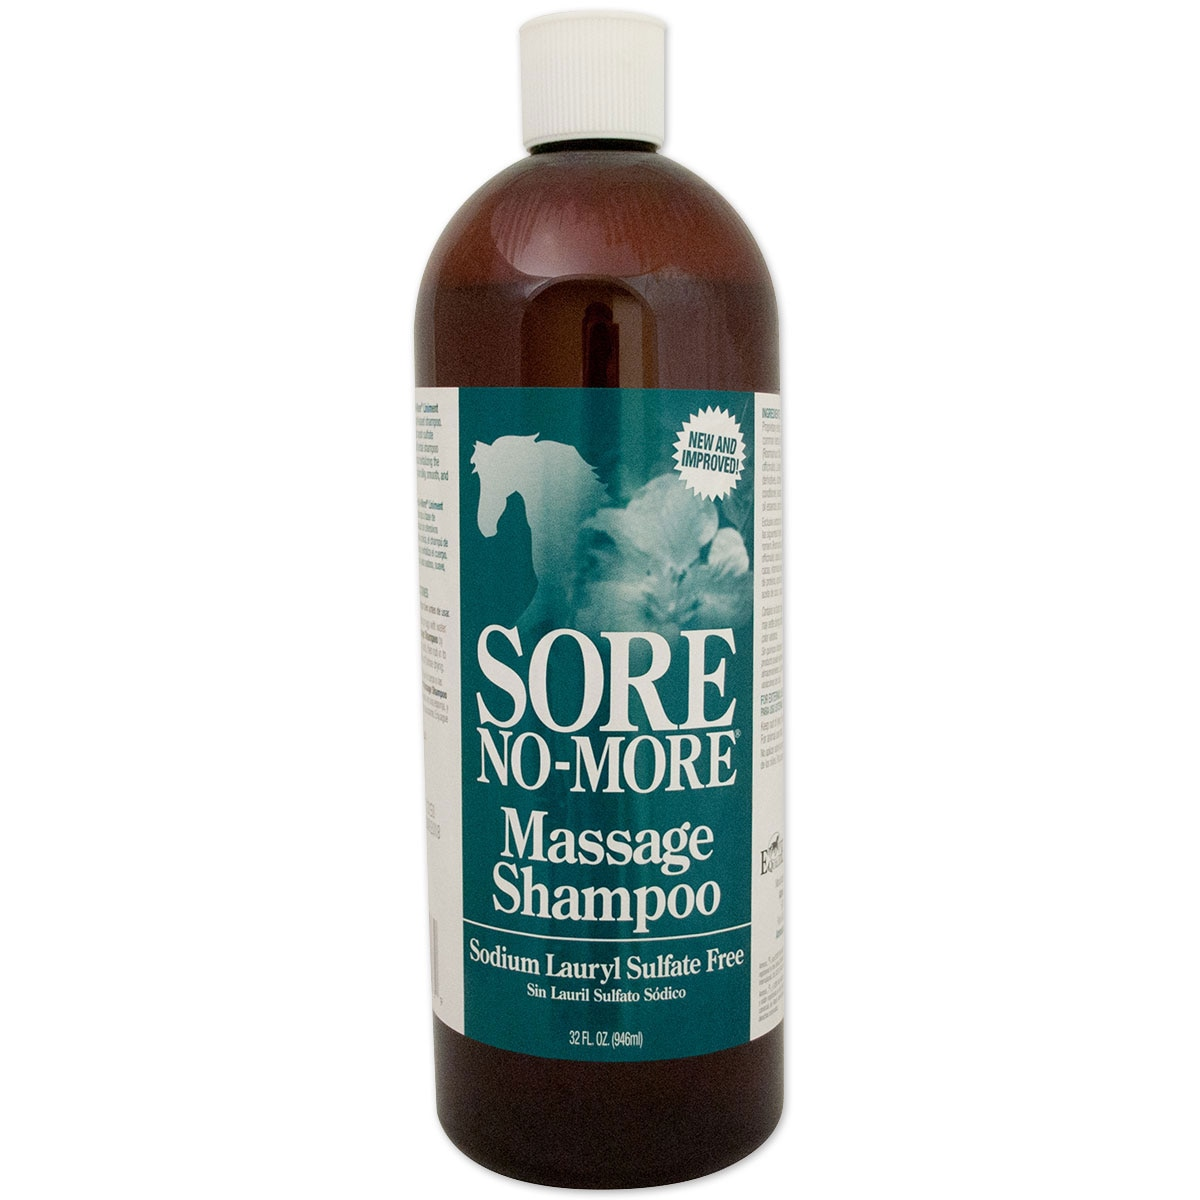 Sore No-More® Massage Shampoo